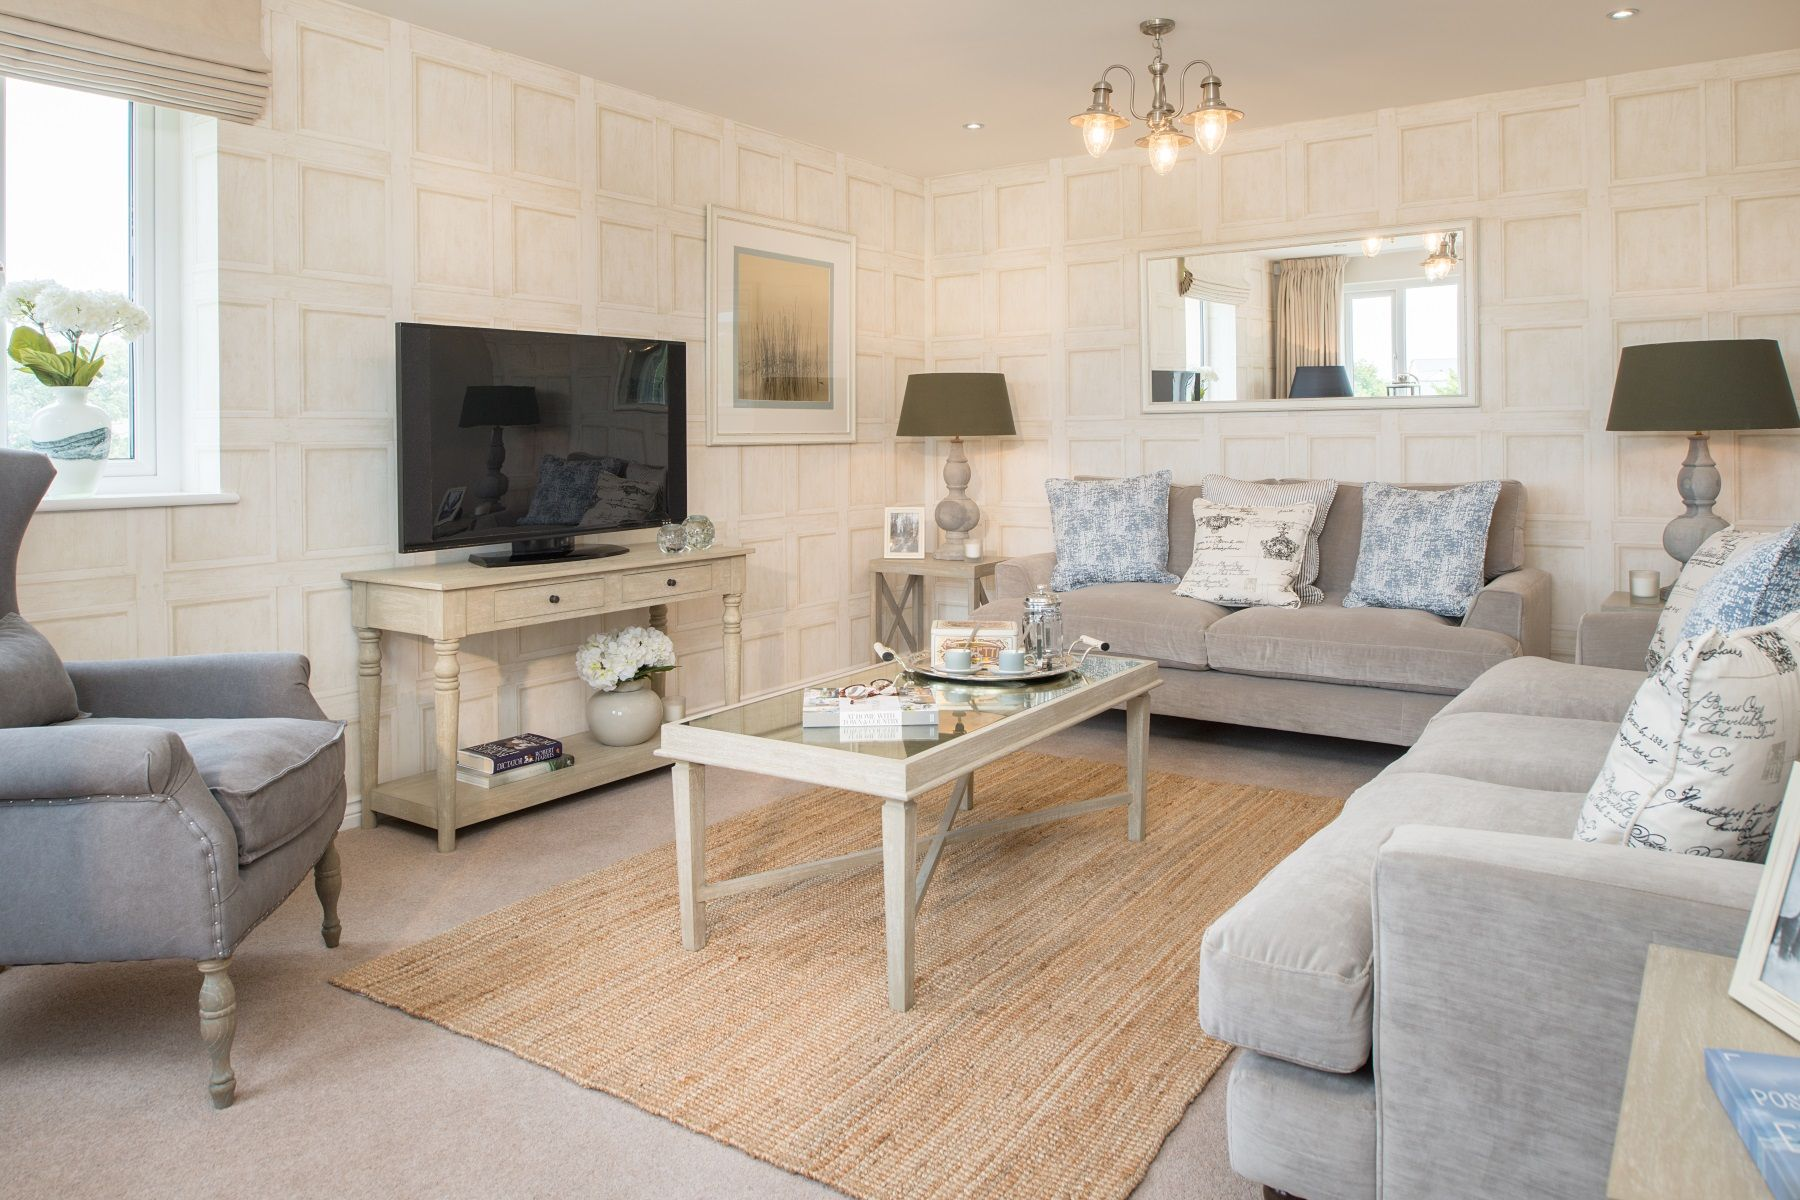 TW Exeter - Copleston Heights - Kennilworth example living room